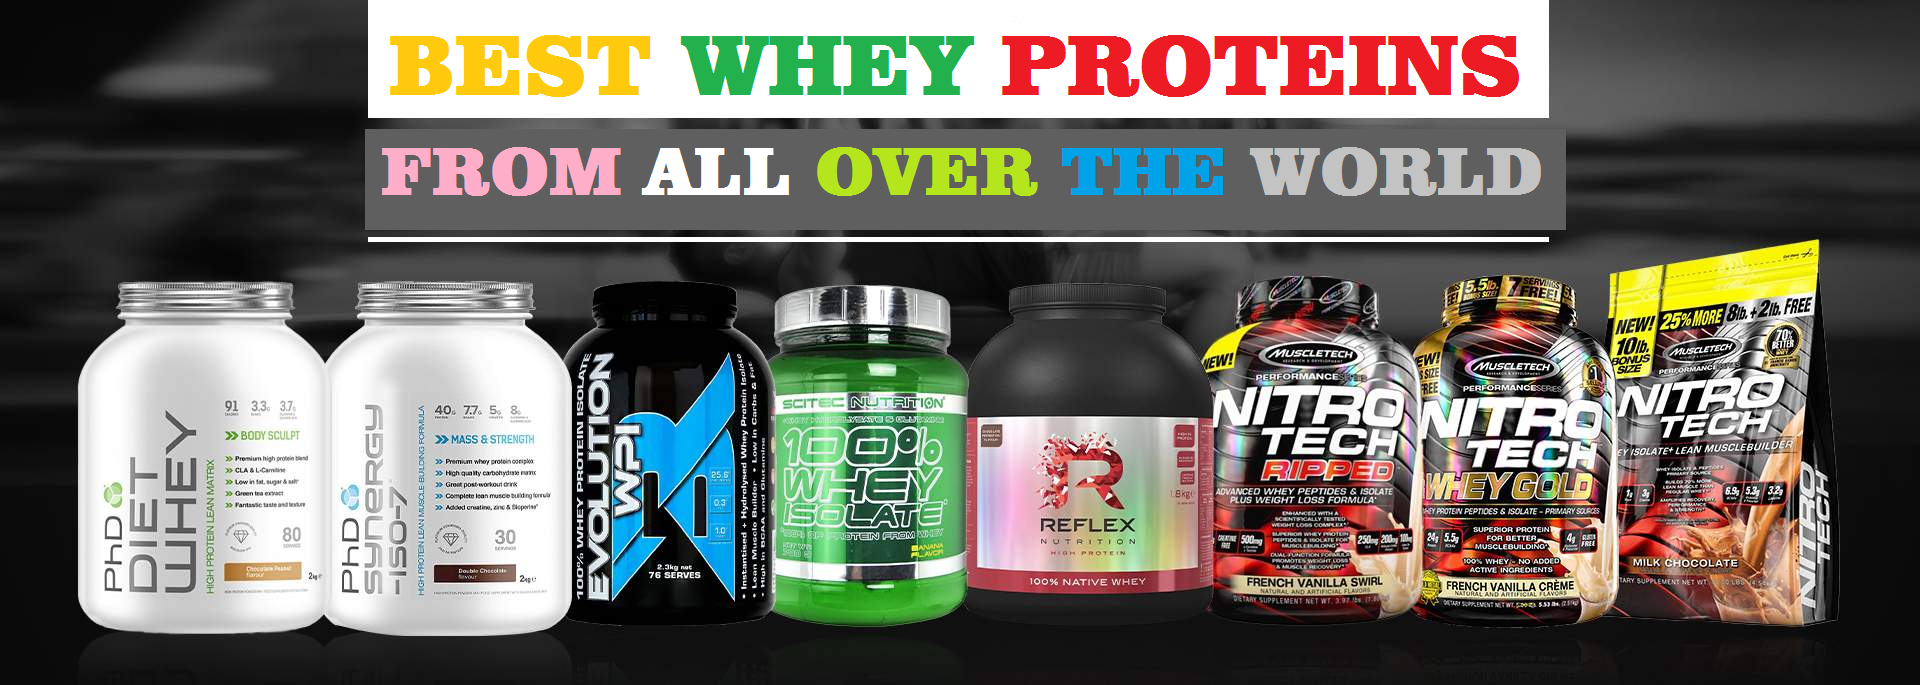 BEST WHEY PROTEINS FROM ALL OVER THE WORLD At www.arnutrition.pk